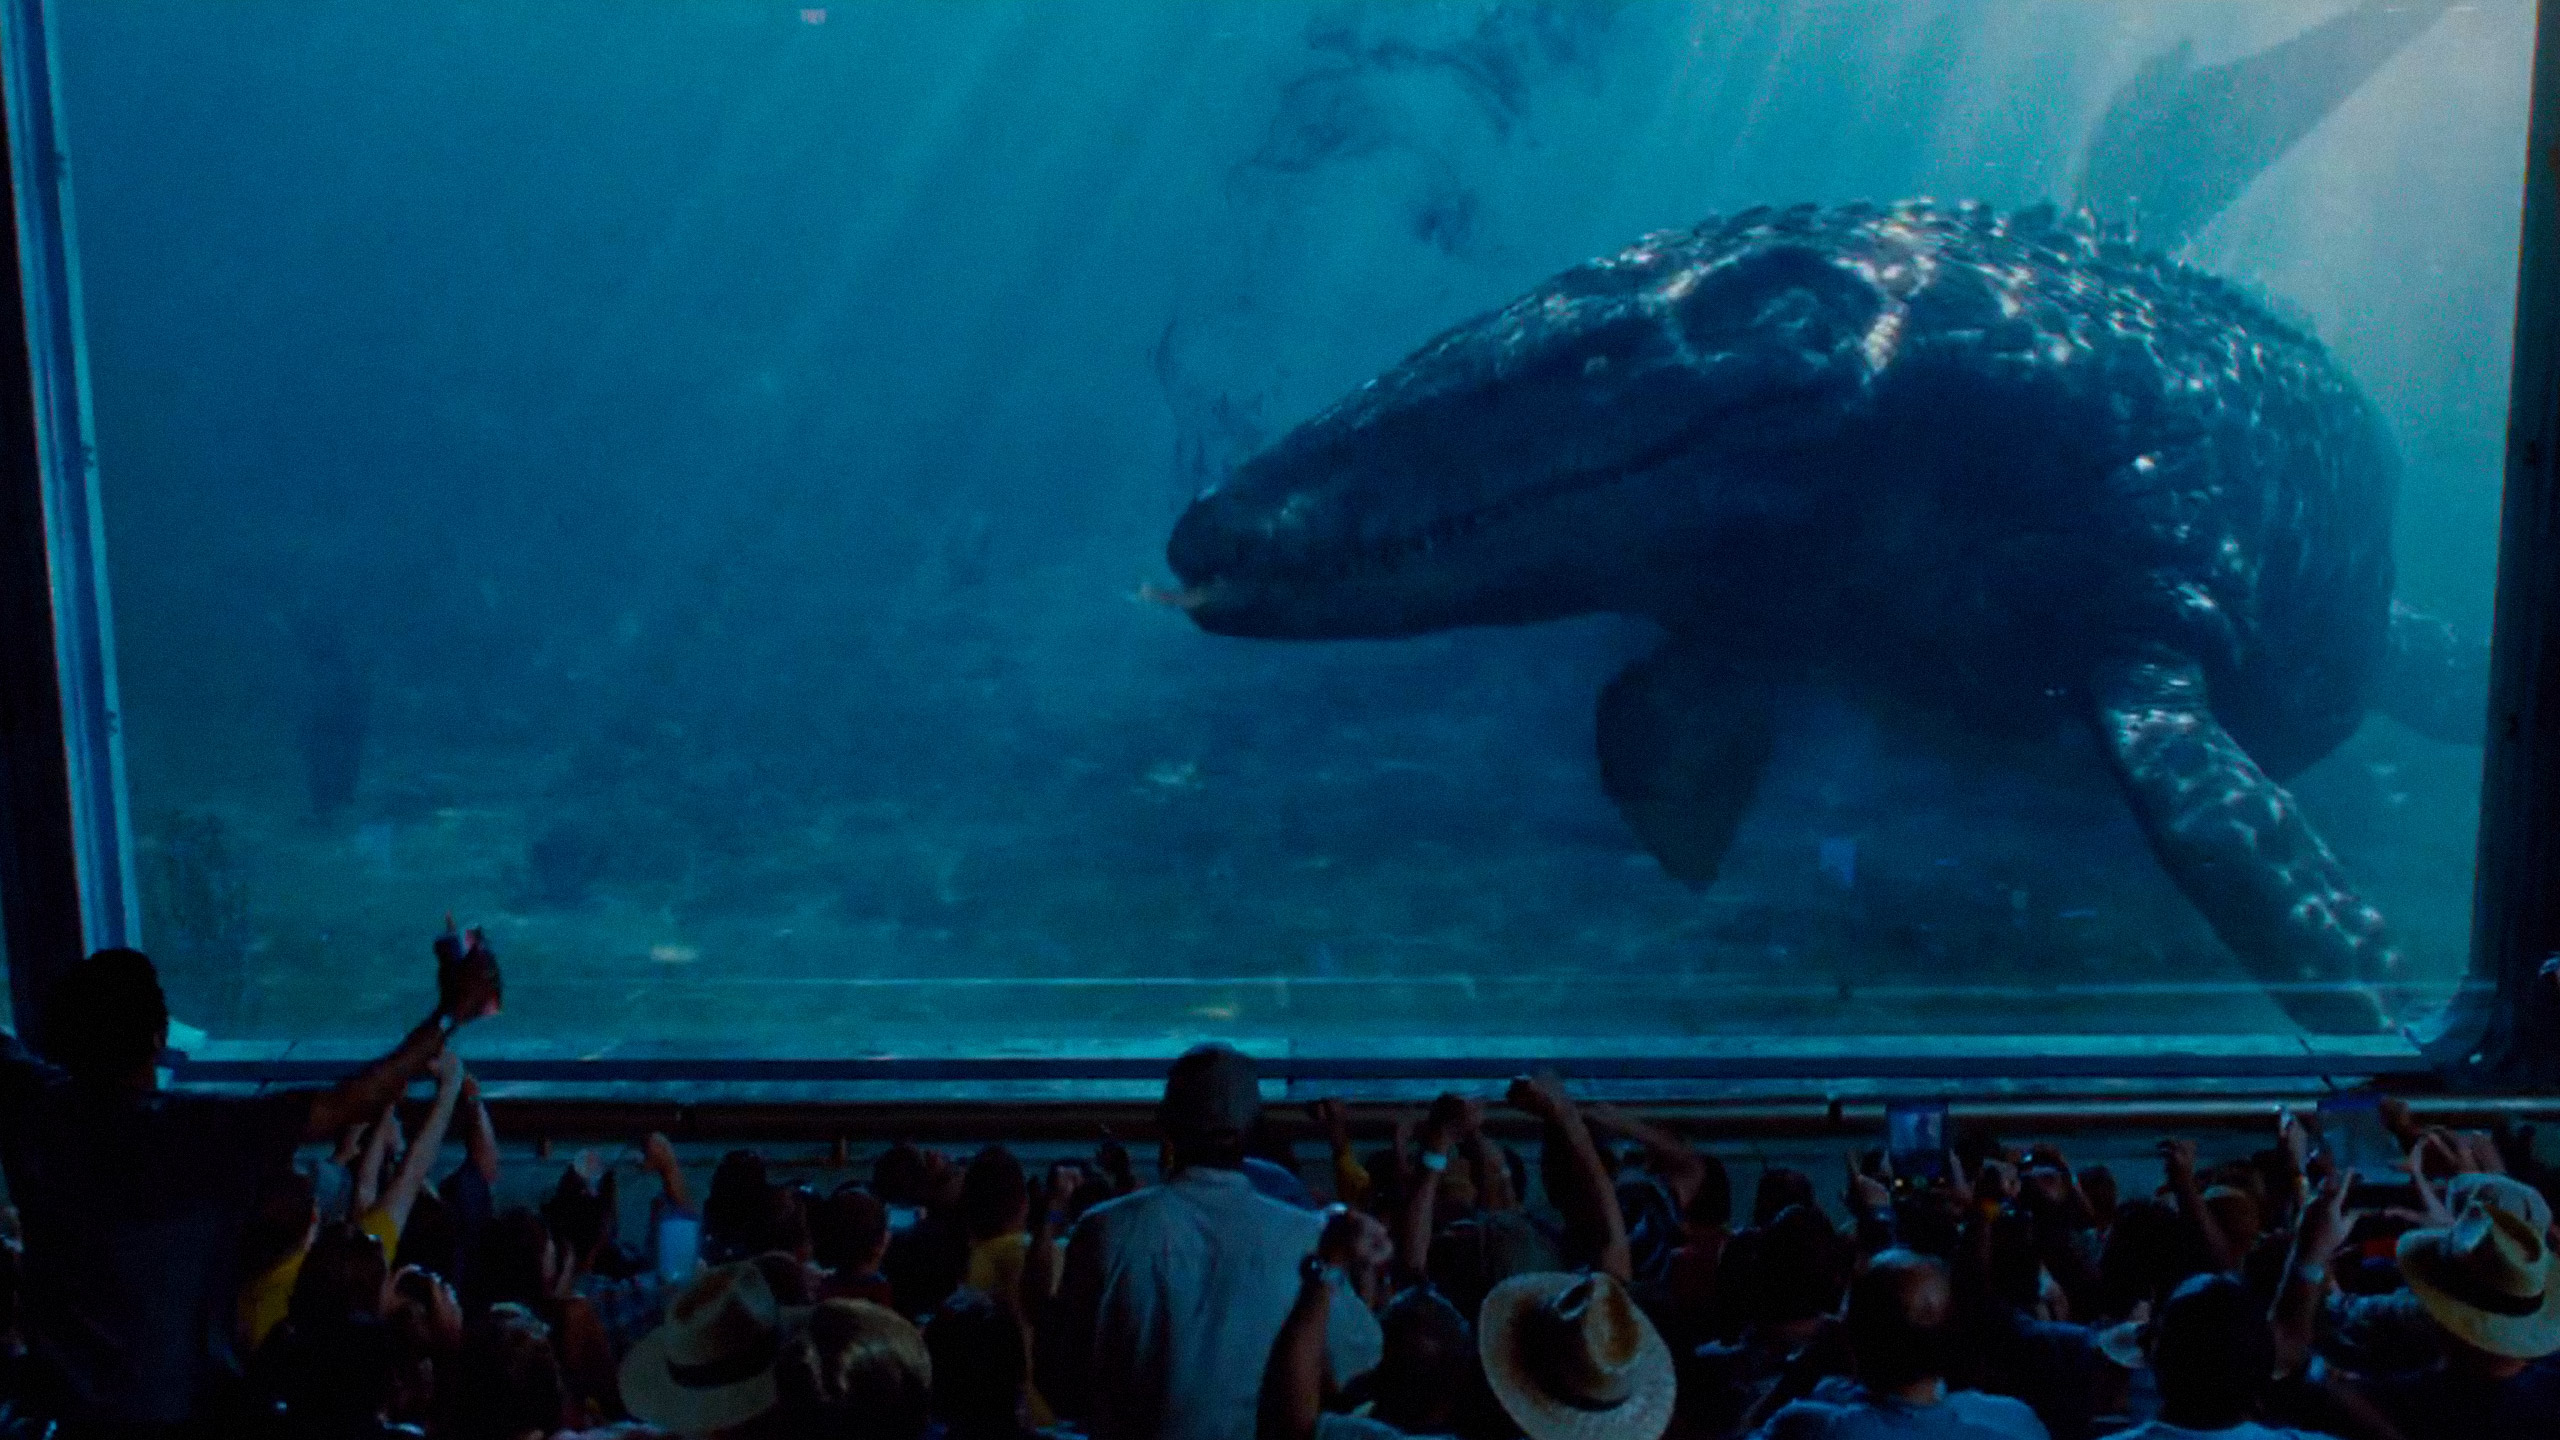 Jurassic World Free Desktop Wallpapers for Widescreen HD and Mobile